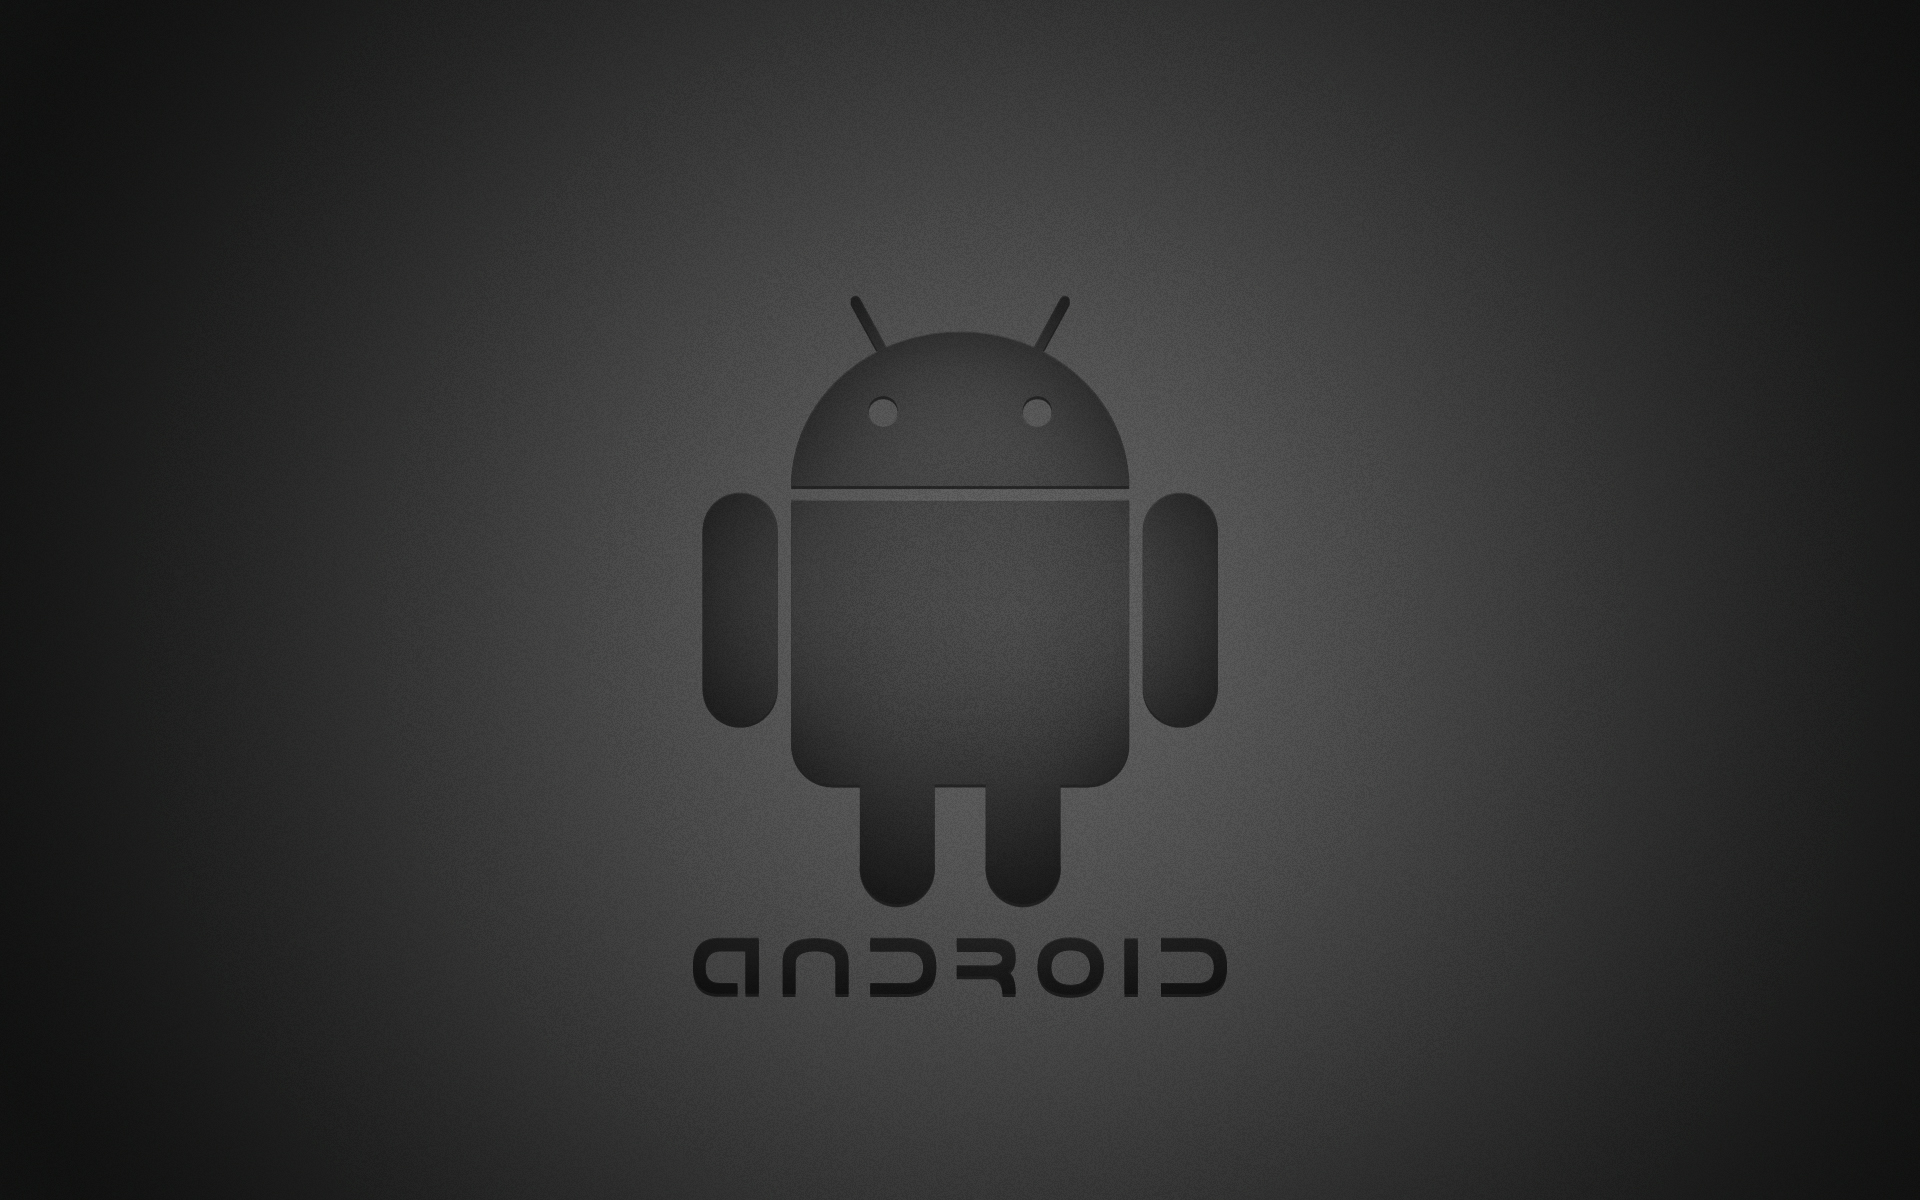 Android Tablet Wallpaper